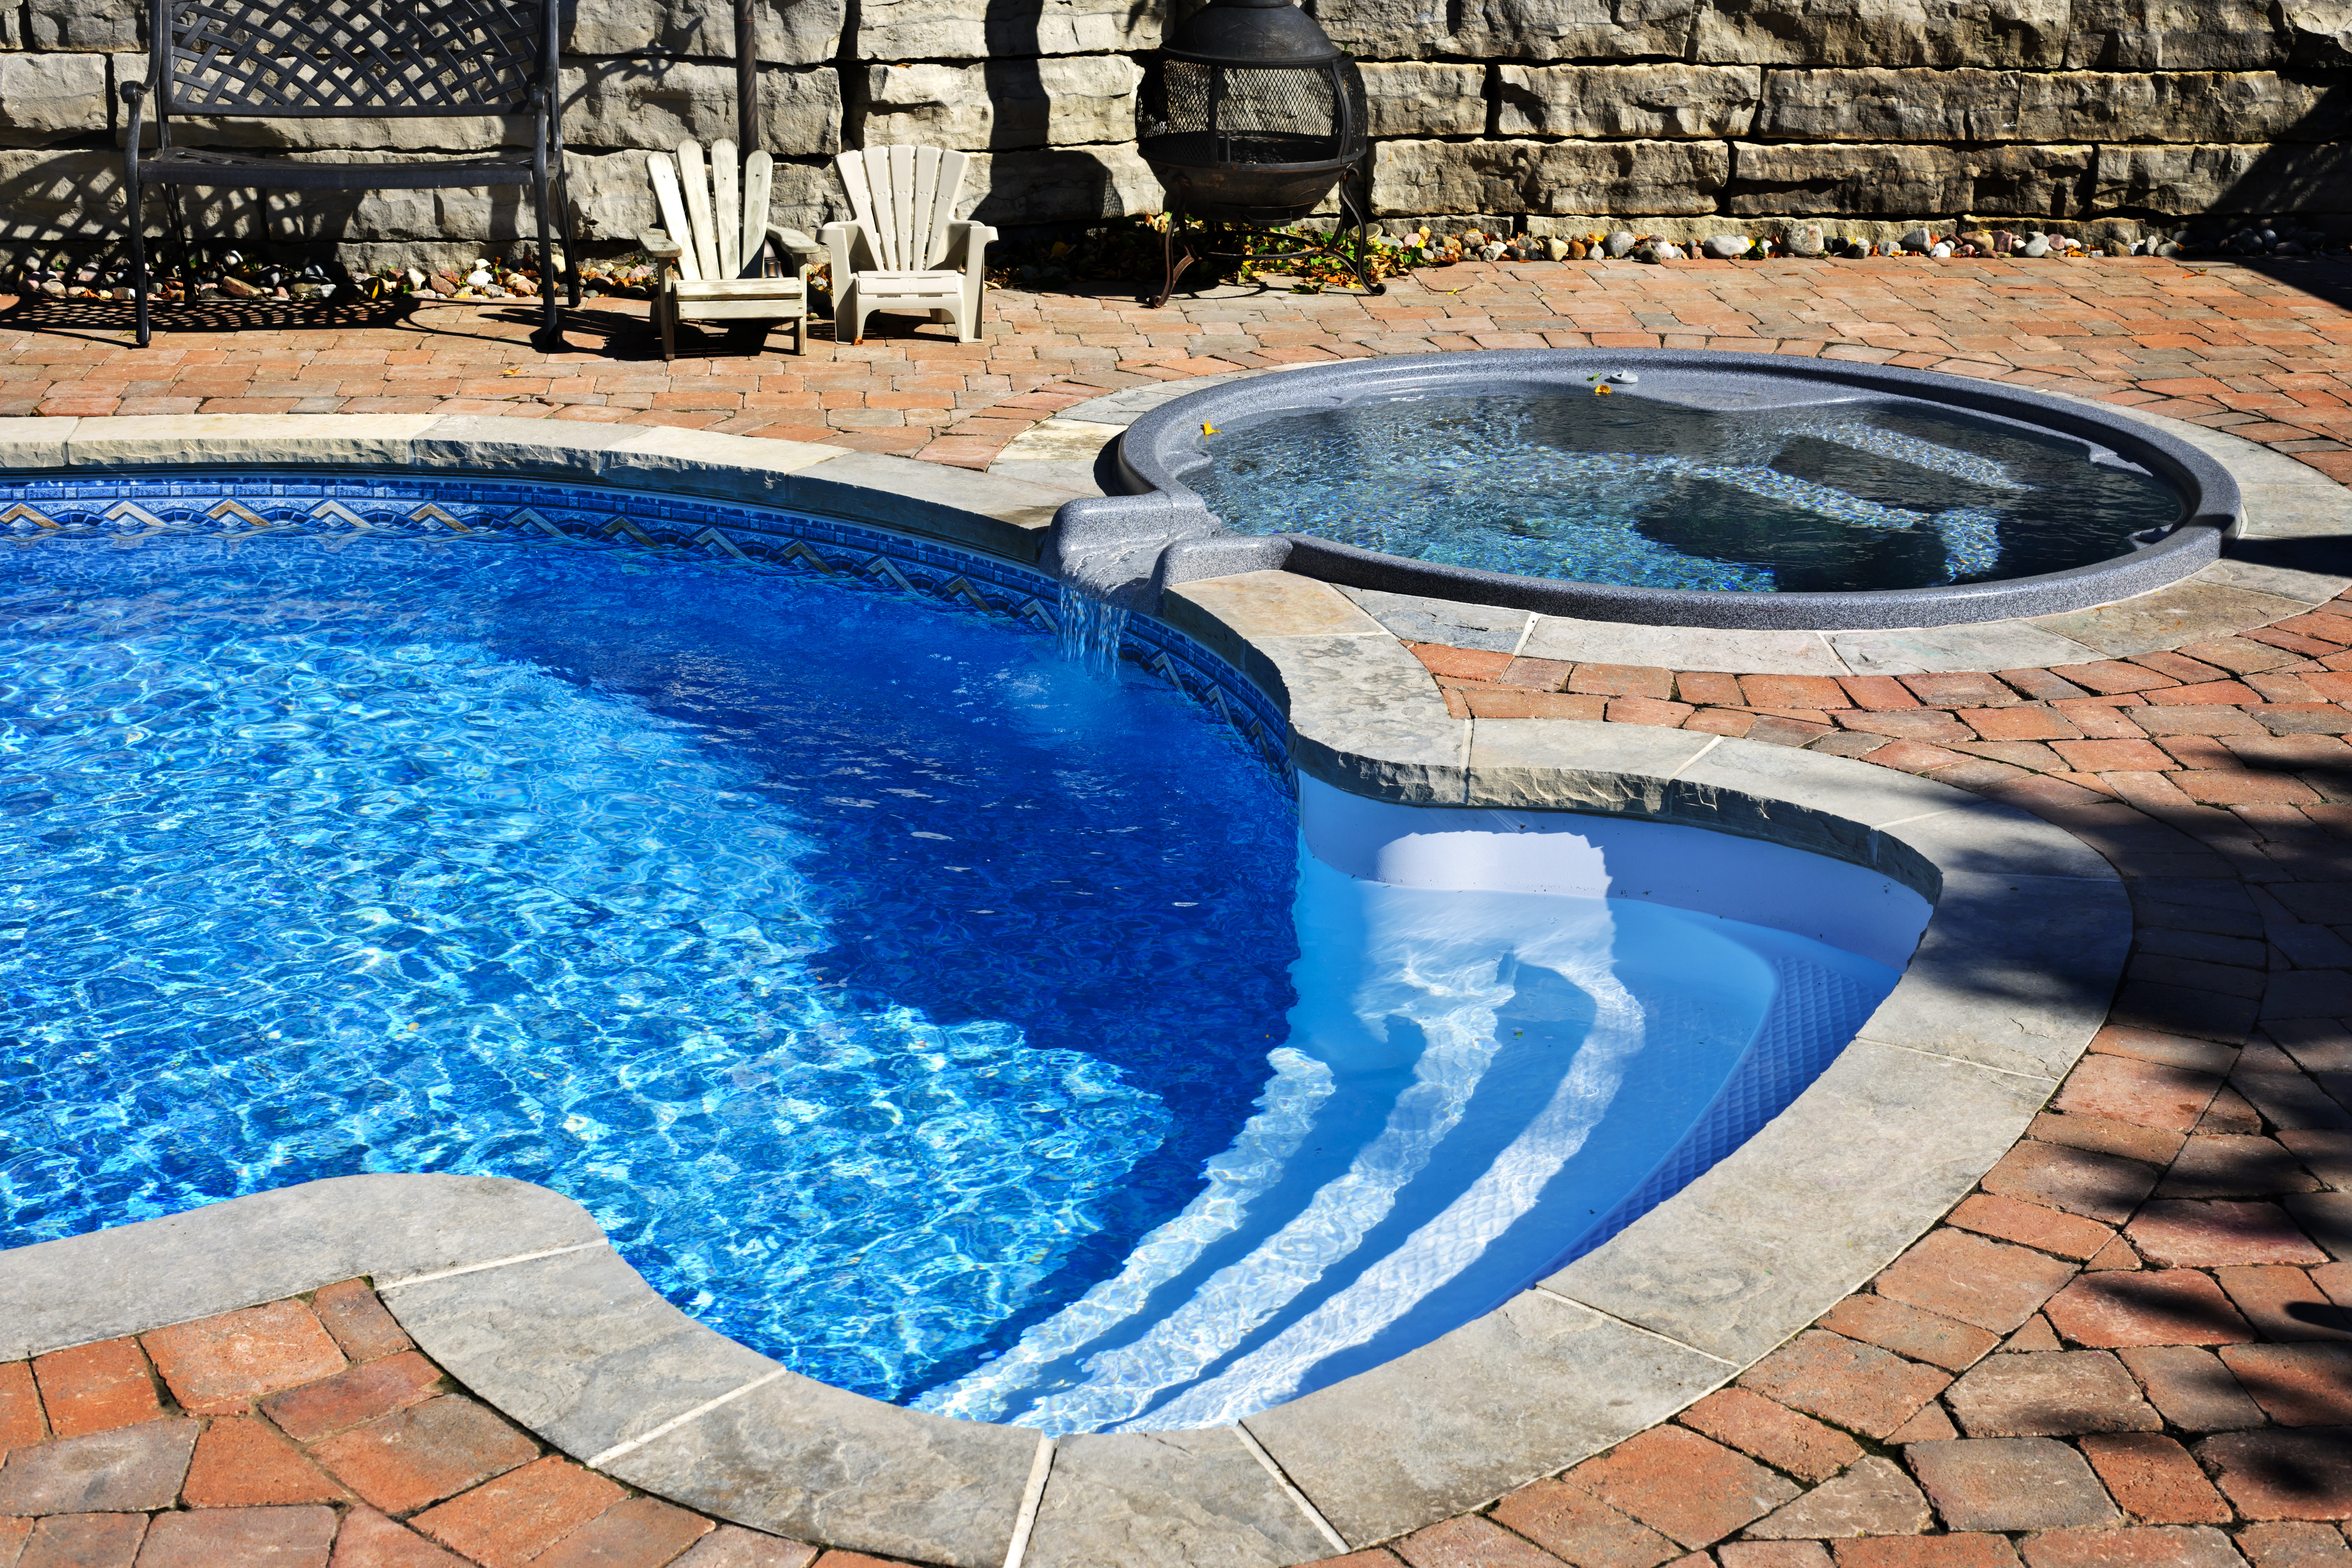 Outdoor inground residential swimming pool in backyard with hot tub